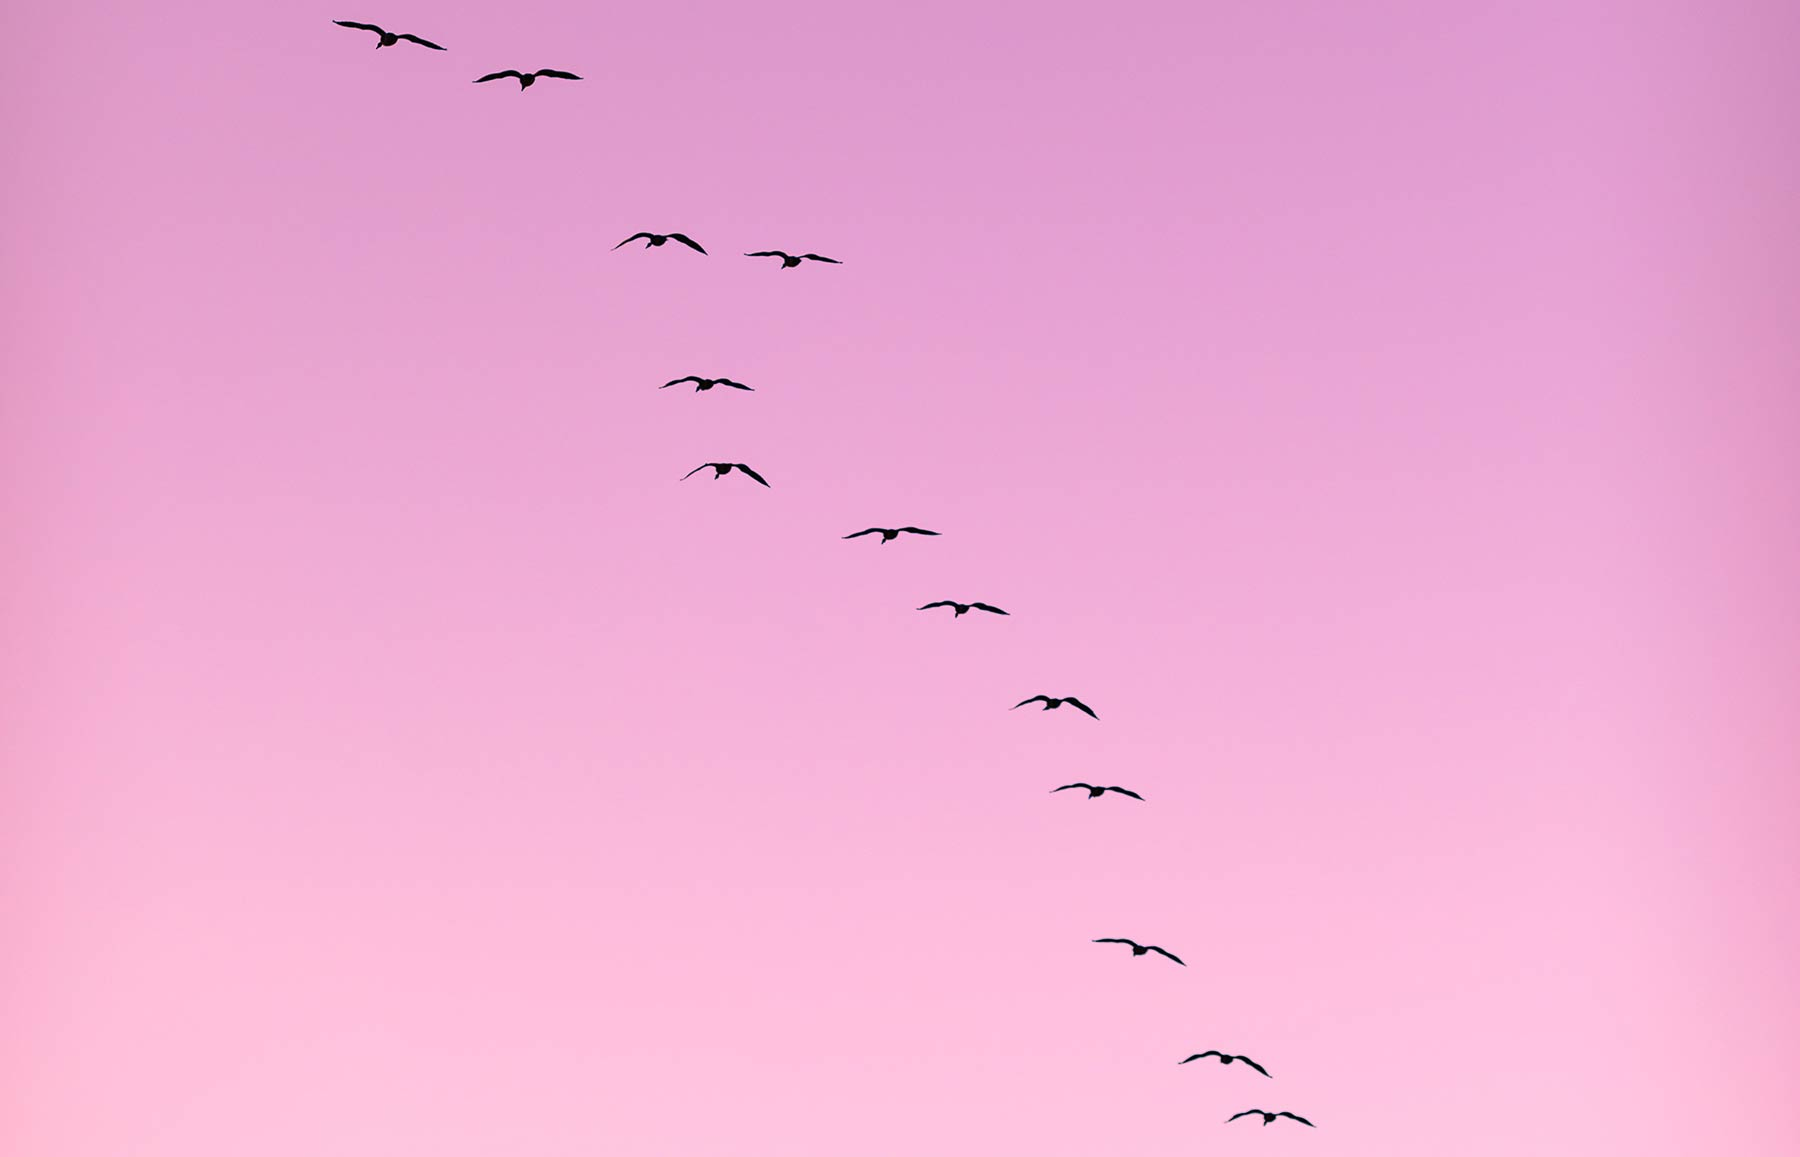 Migration patterns of birds explained